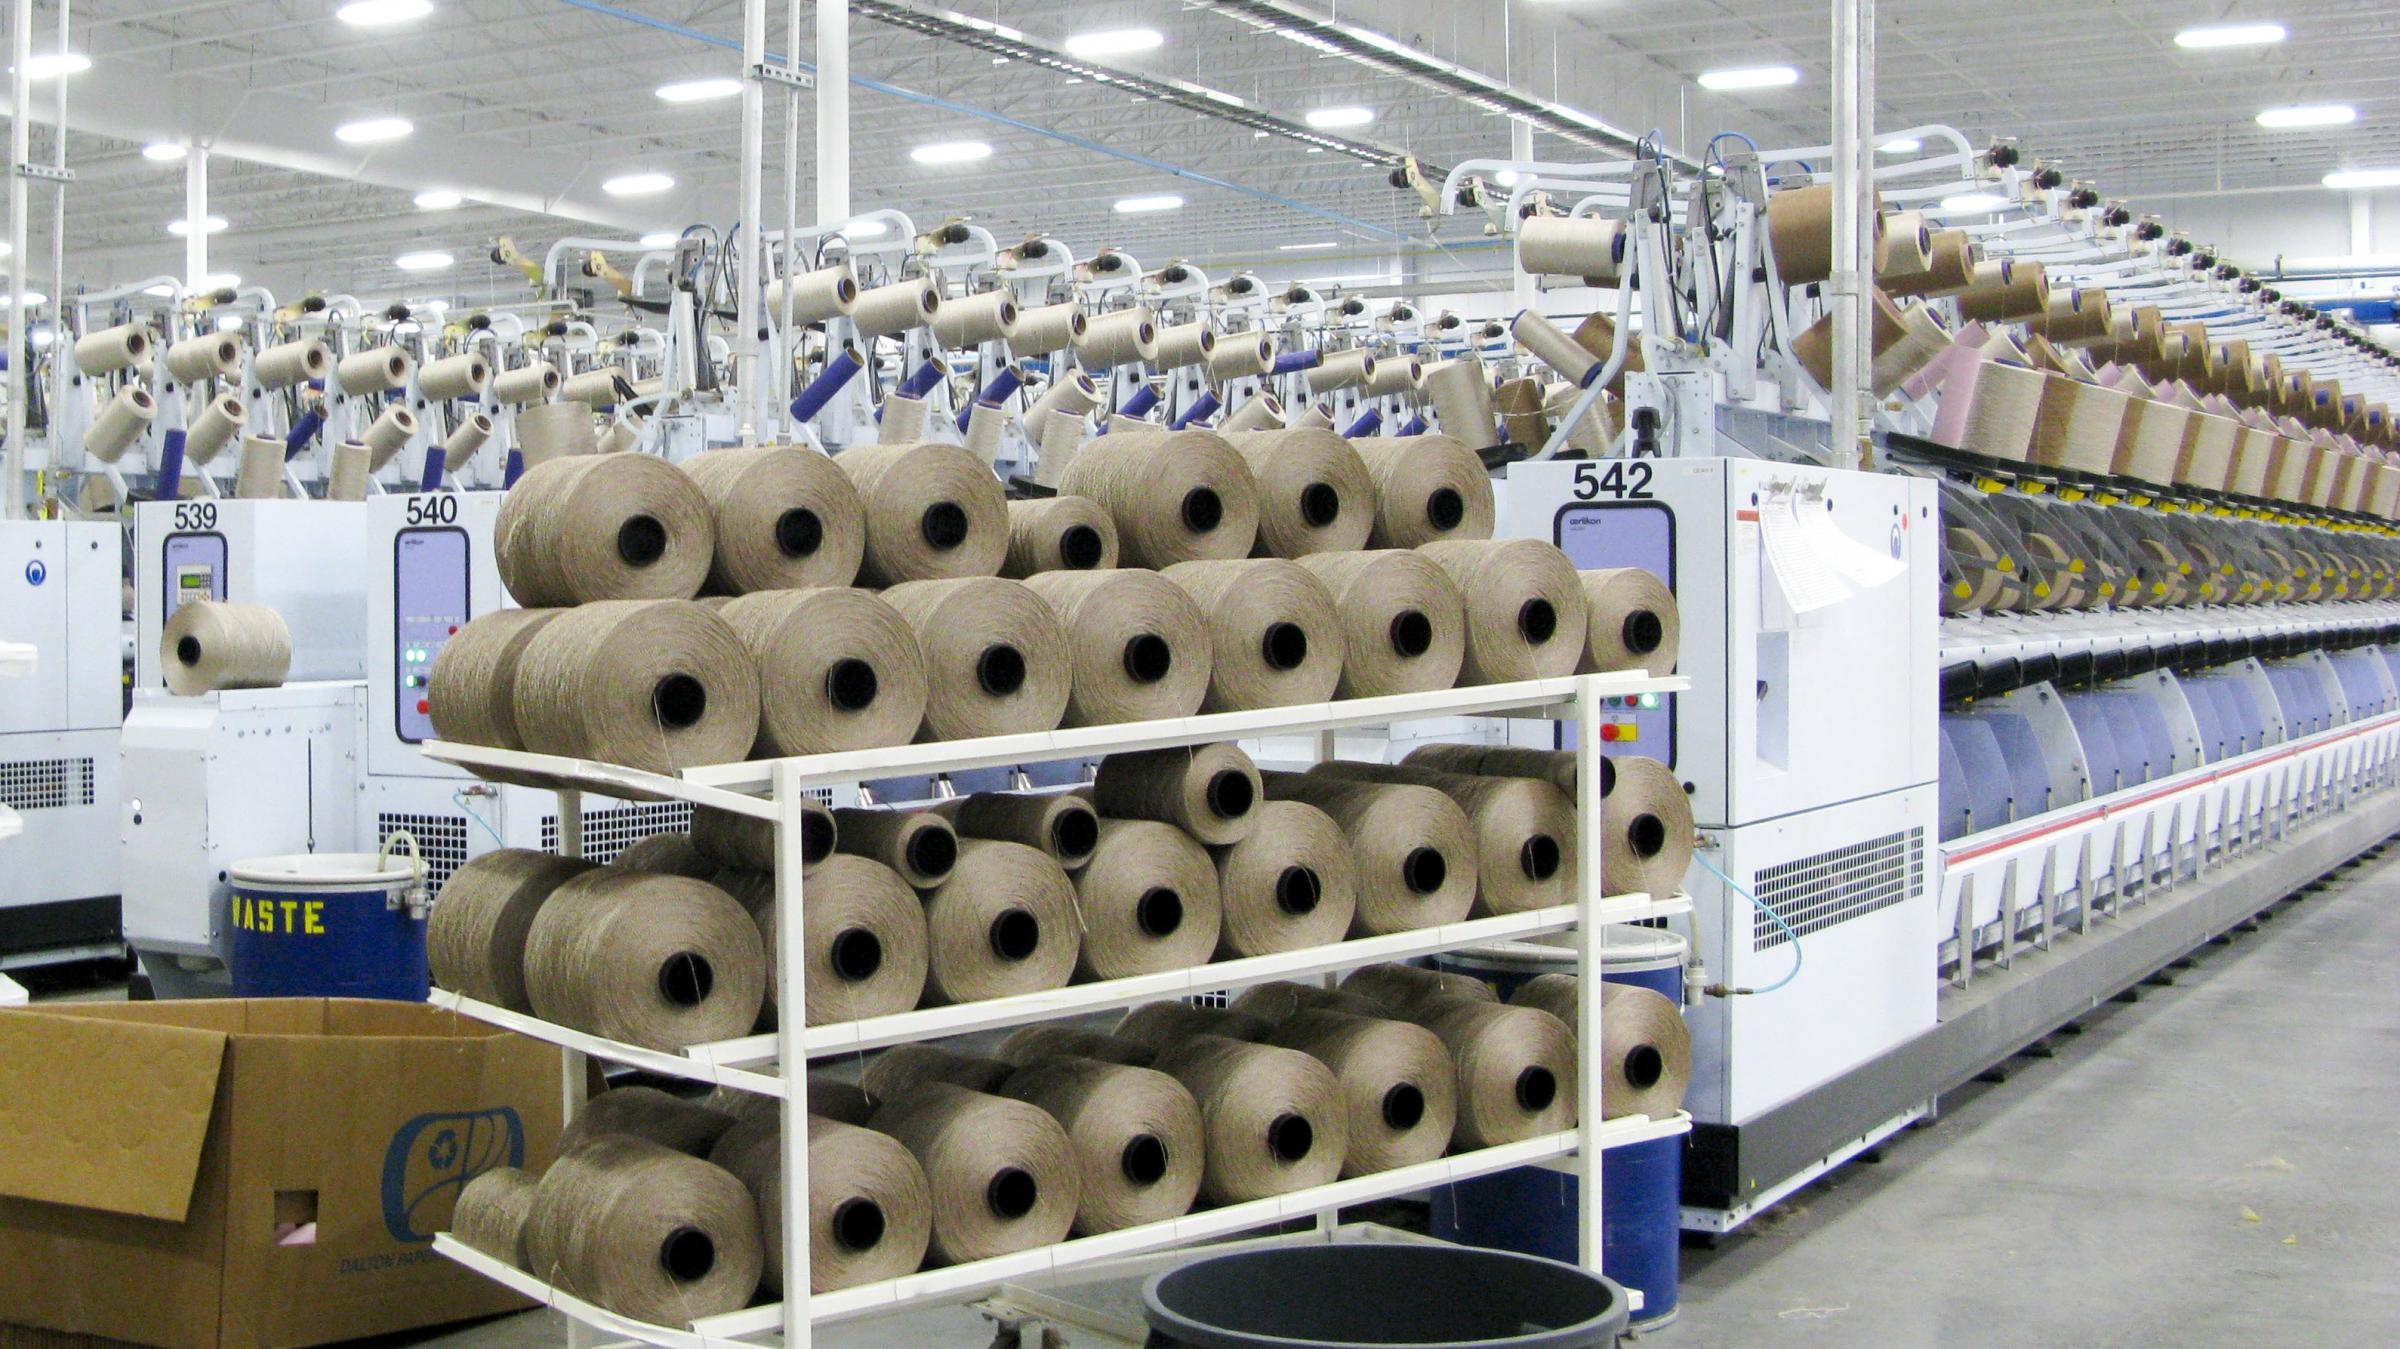 New Carpet Factories Help Cushion Blows From Recession